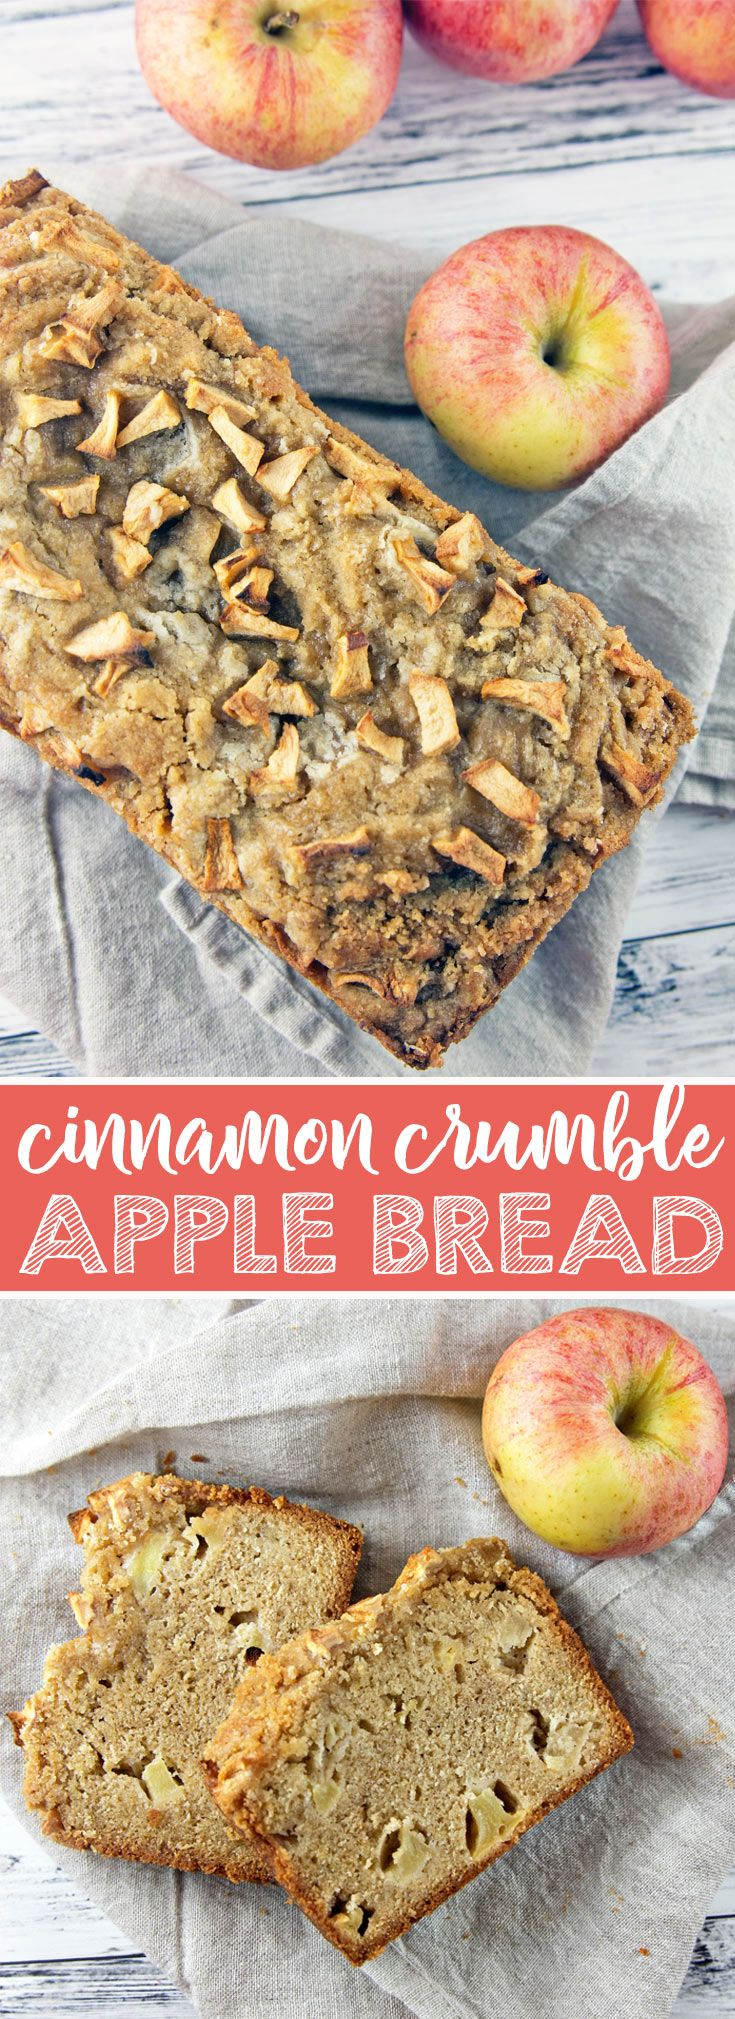 Cinnamon Apple Crumble Bread: whisk-by-hand fall baking at its finest. All the delicious flavors of fall, but so much easier than a pie. Perfect to share! {Bunsen Burner Bakery} via @bnsnbrnrbakery